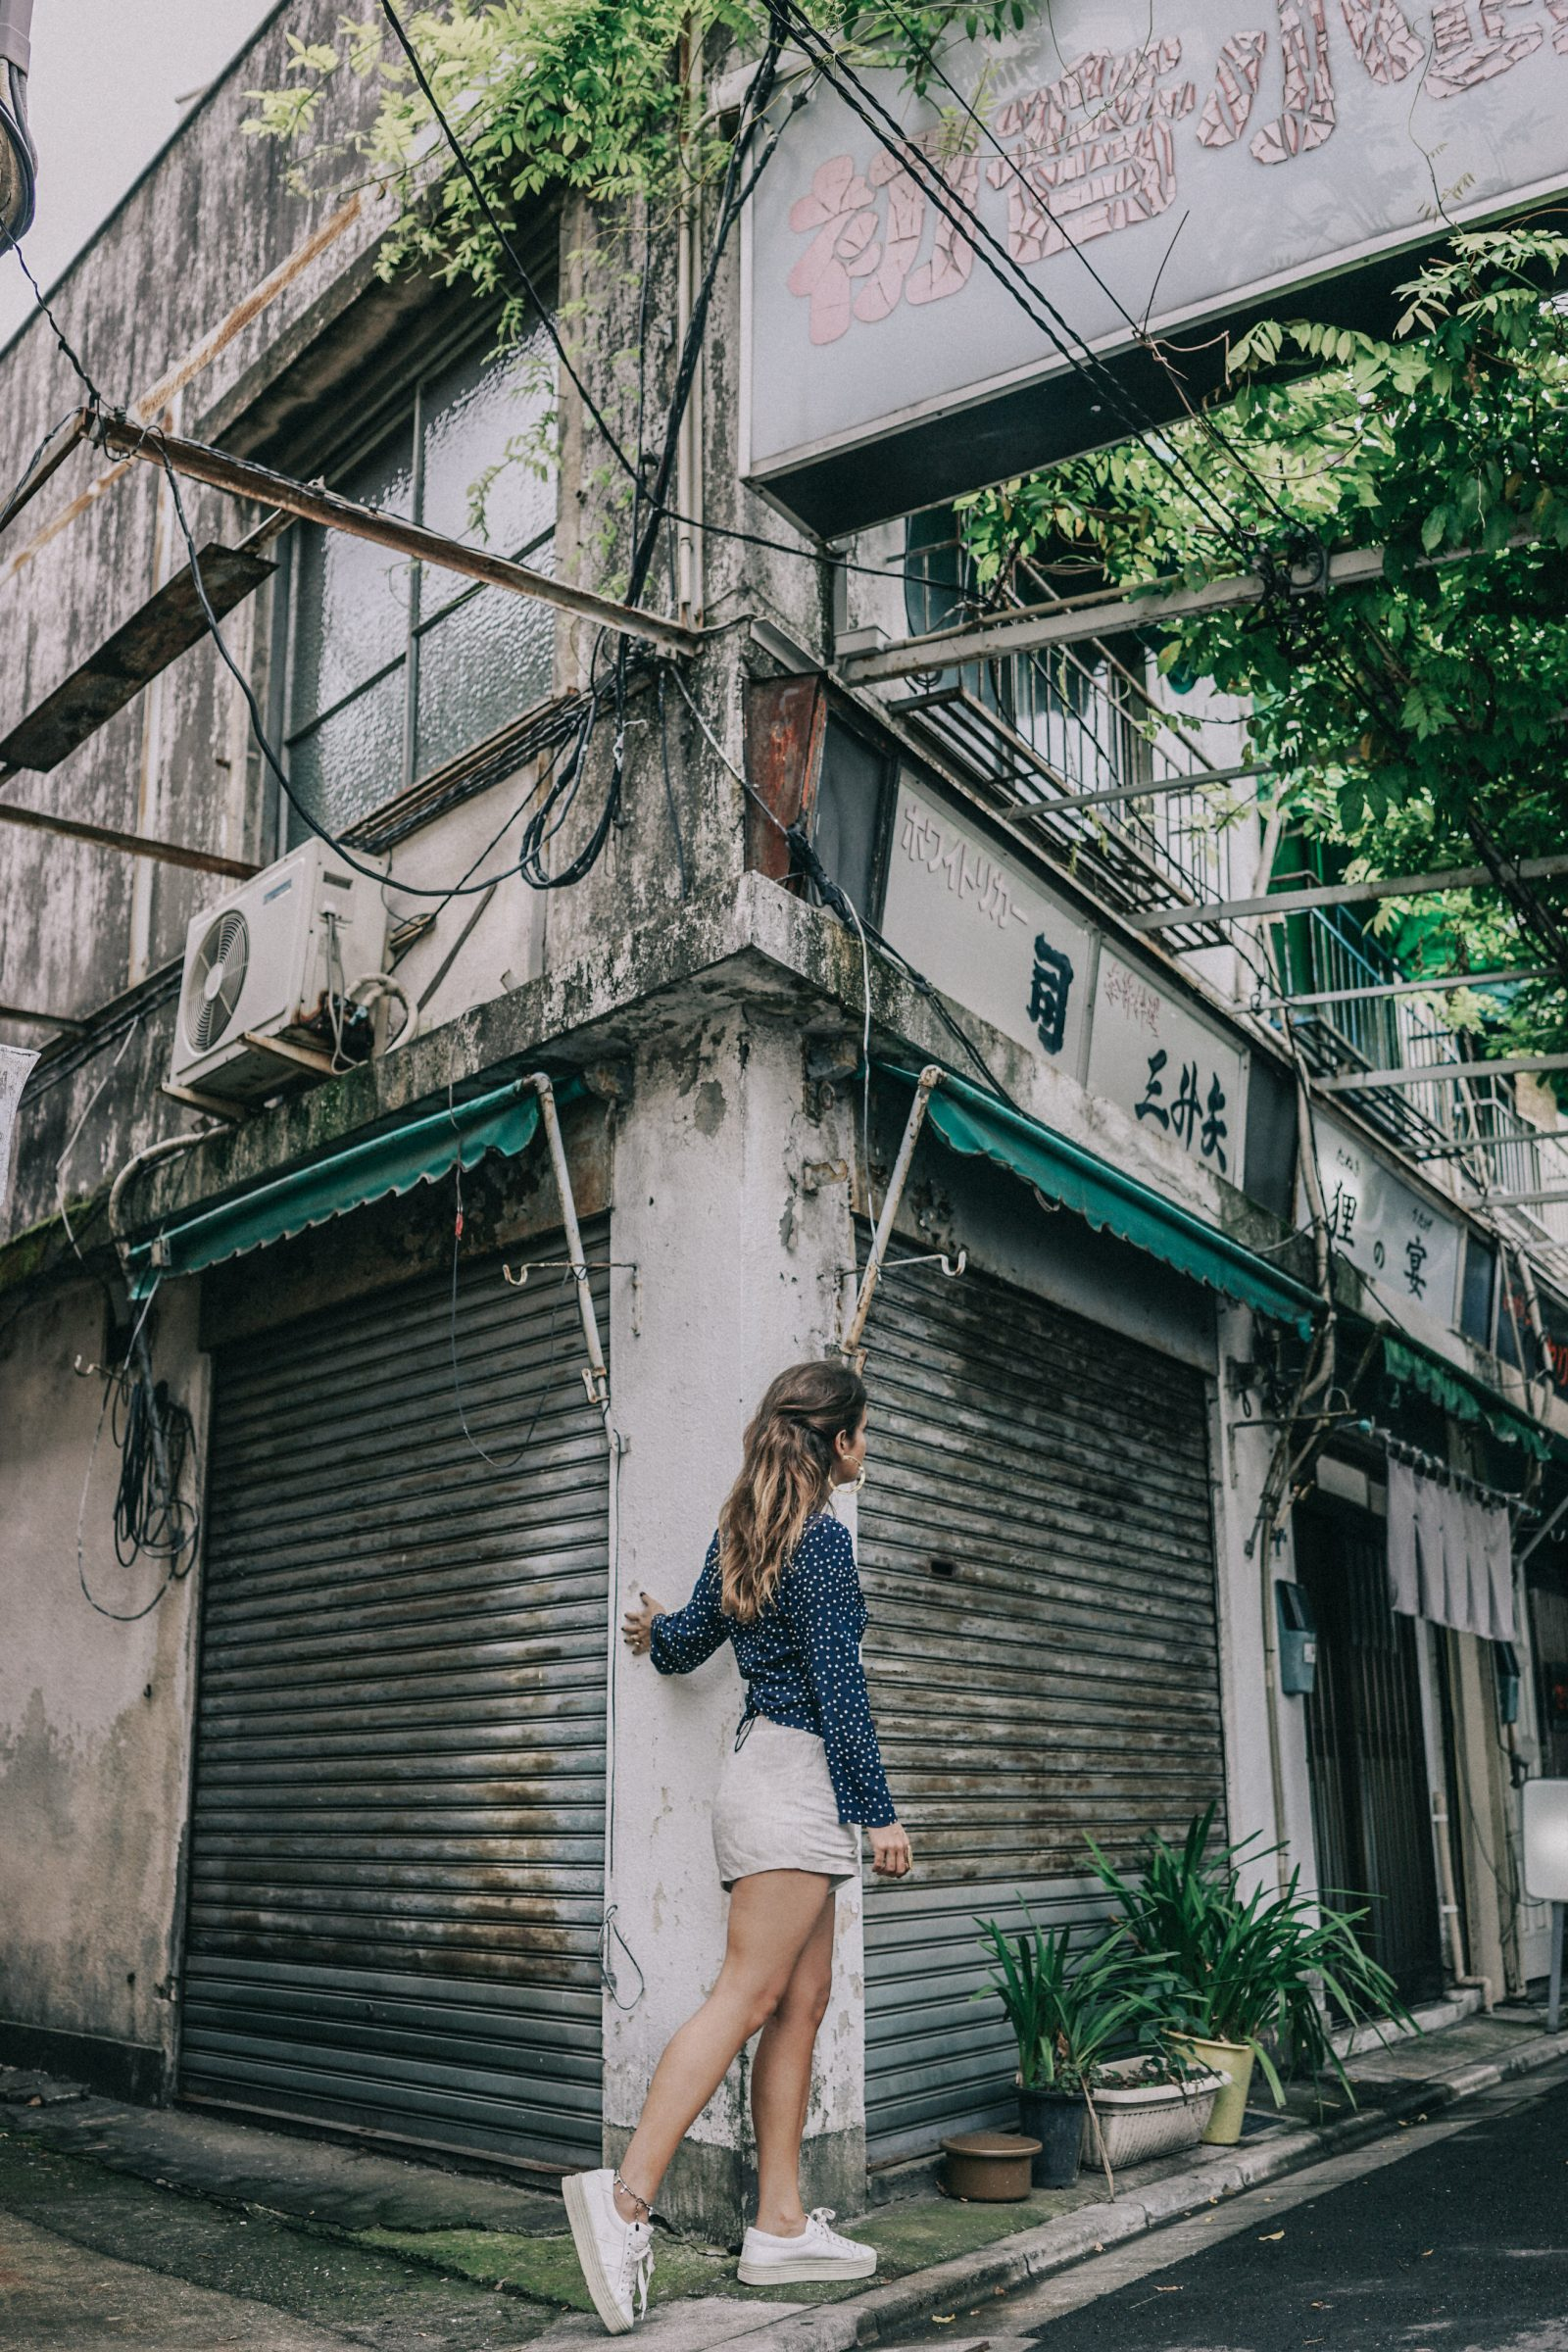 Tokyo_Travel_Guide-Outfit-Collage_Vintage-Street_Style-Reformation_Shorts-Realisation_Par_Stars_Blouse-Sneakers-Flea_Market_Backpack-81